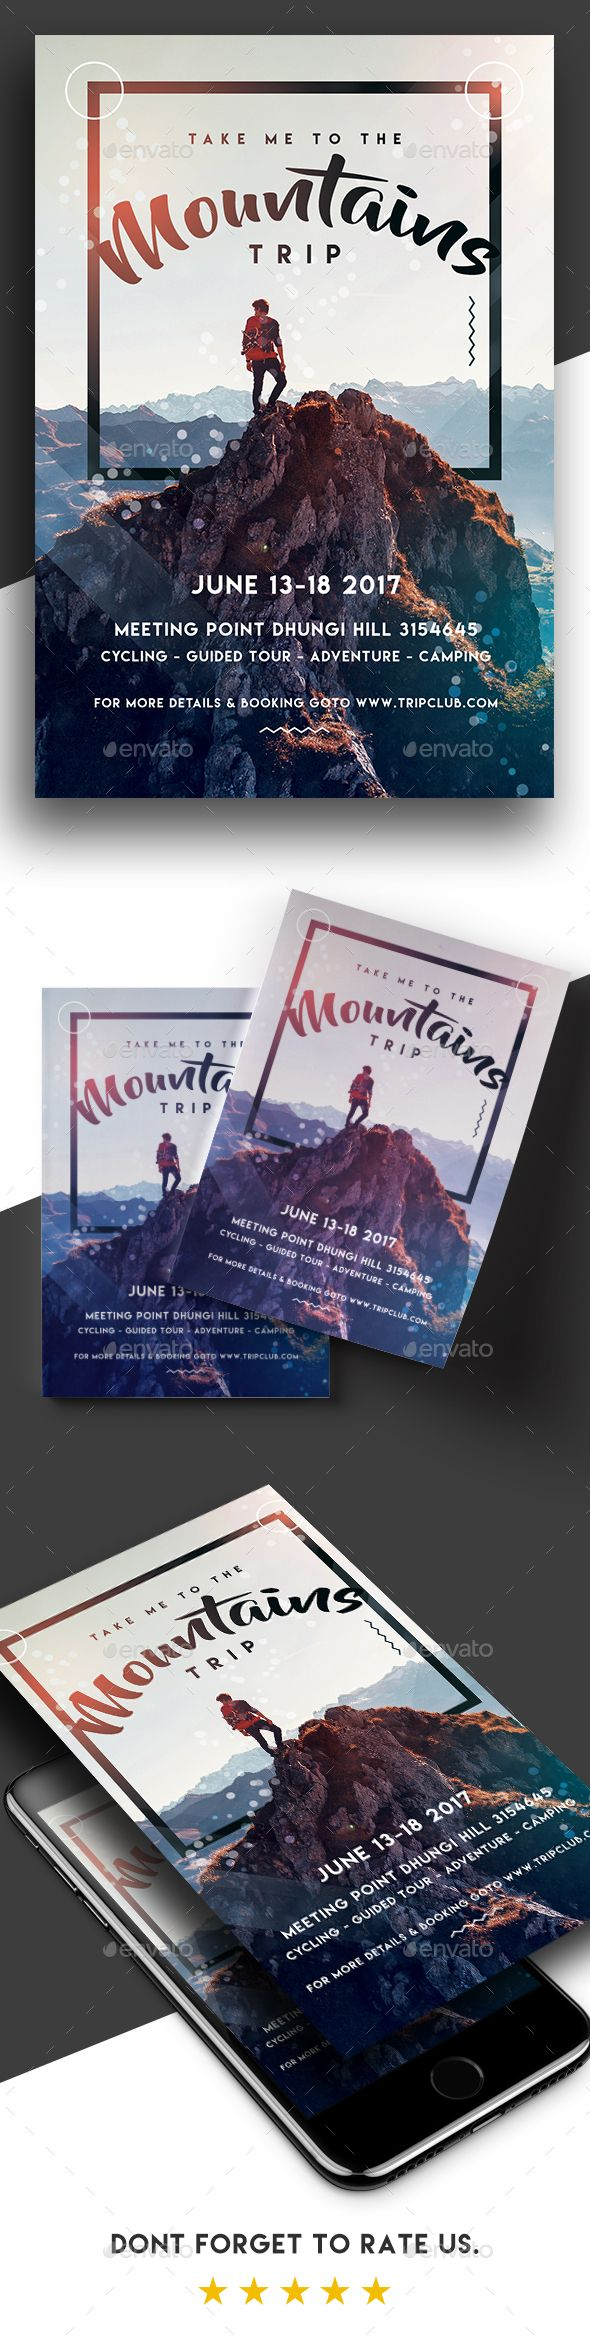 Take Me To The Mountains - Trip #Flyer - Holidays #Events Download here: https://graphicriver.net/item/take-me-to-the-mountains-trip-flyer/19715018?ref=alena994